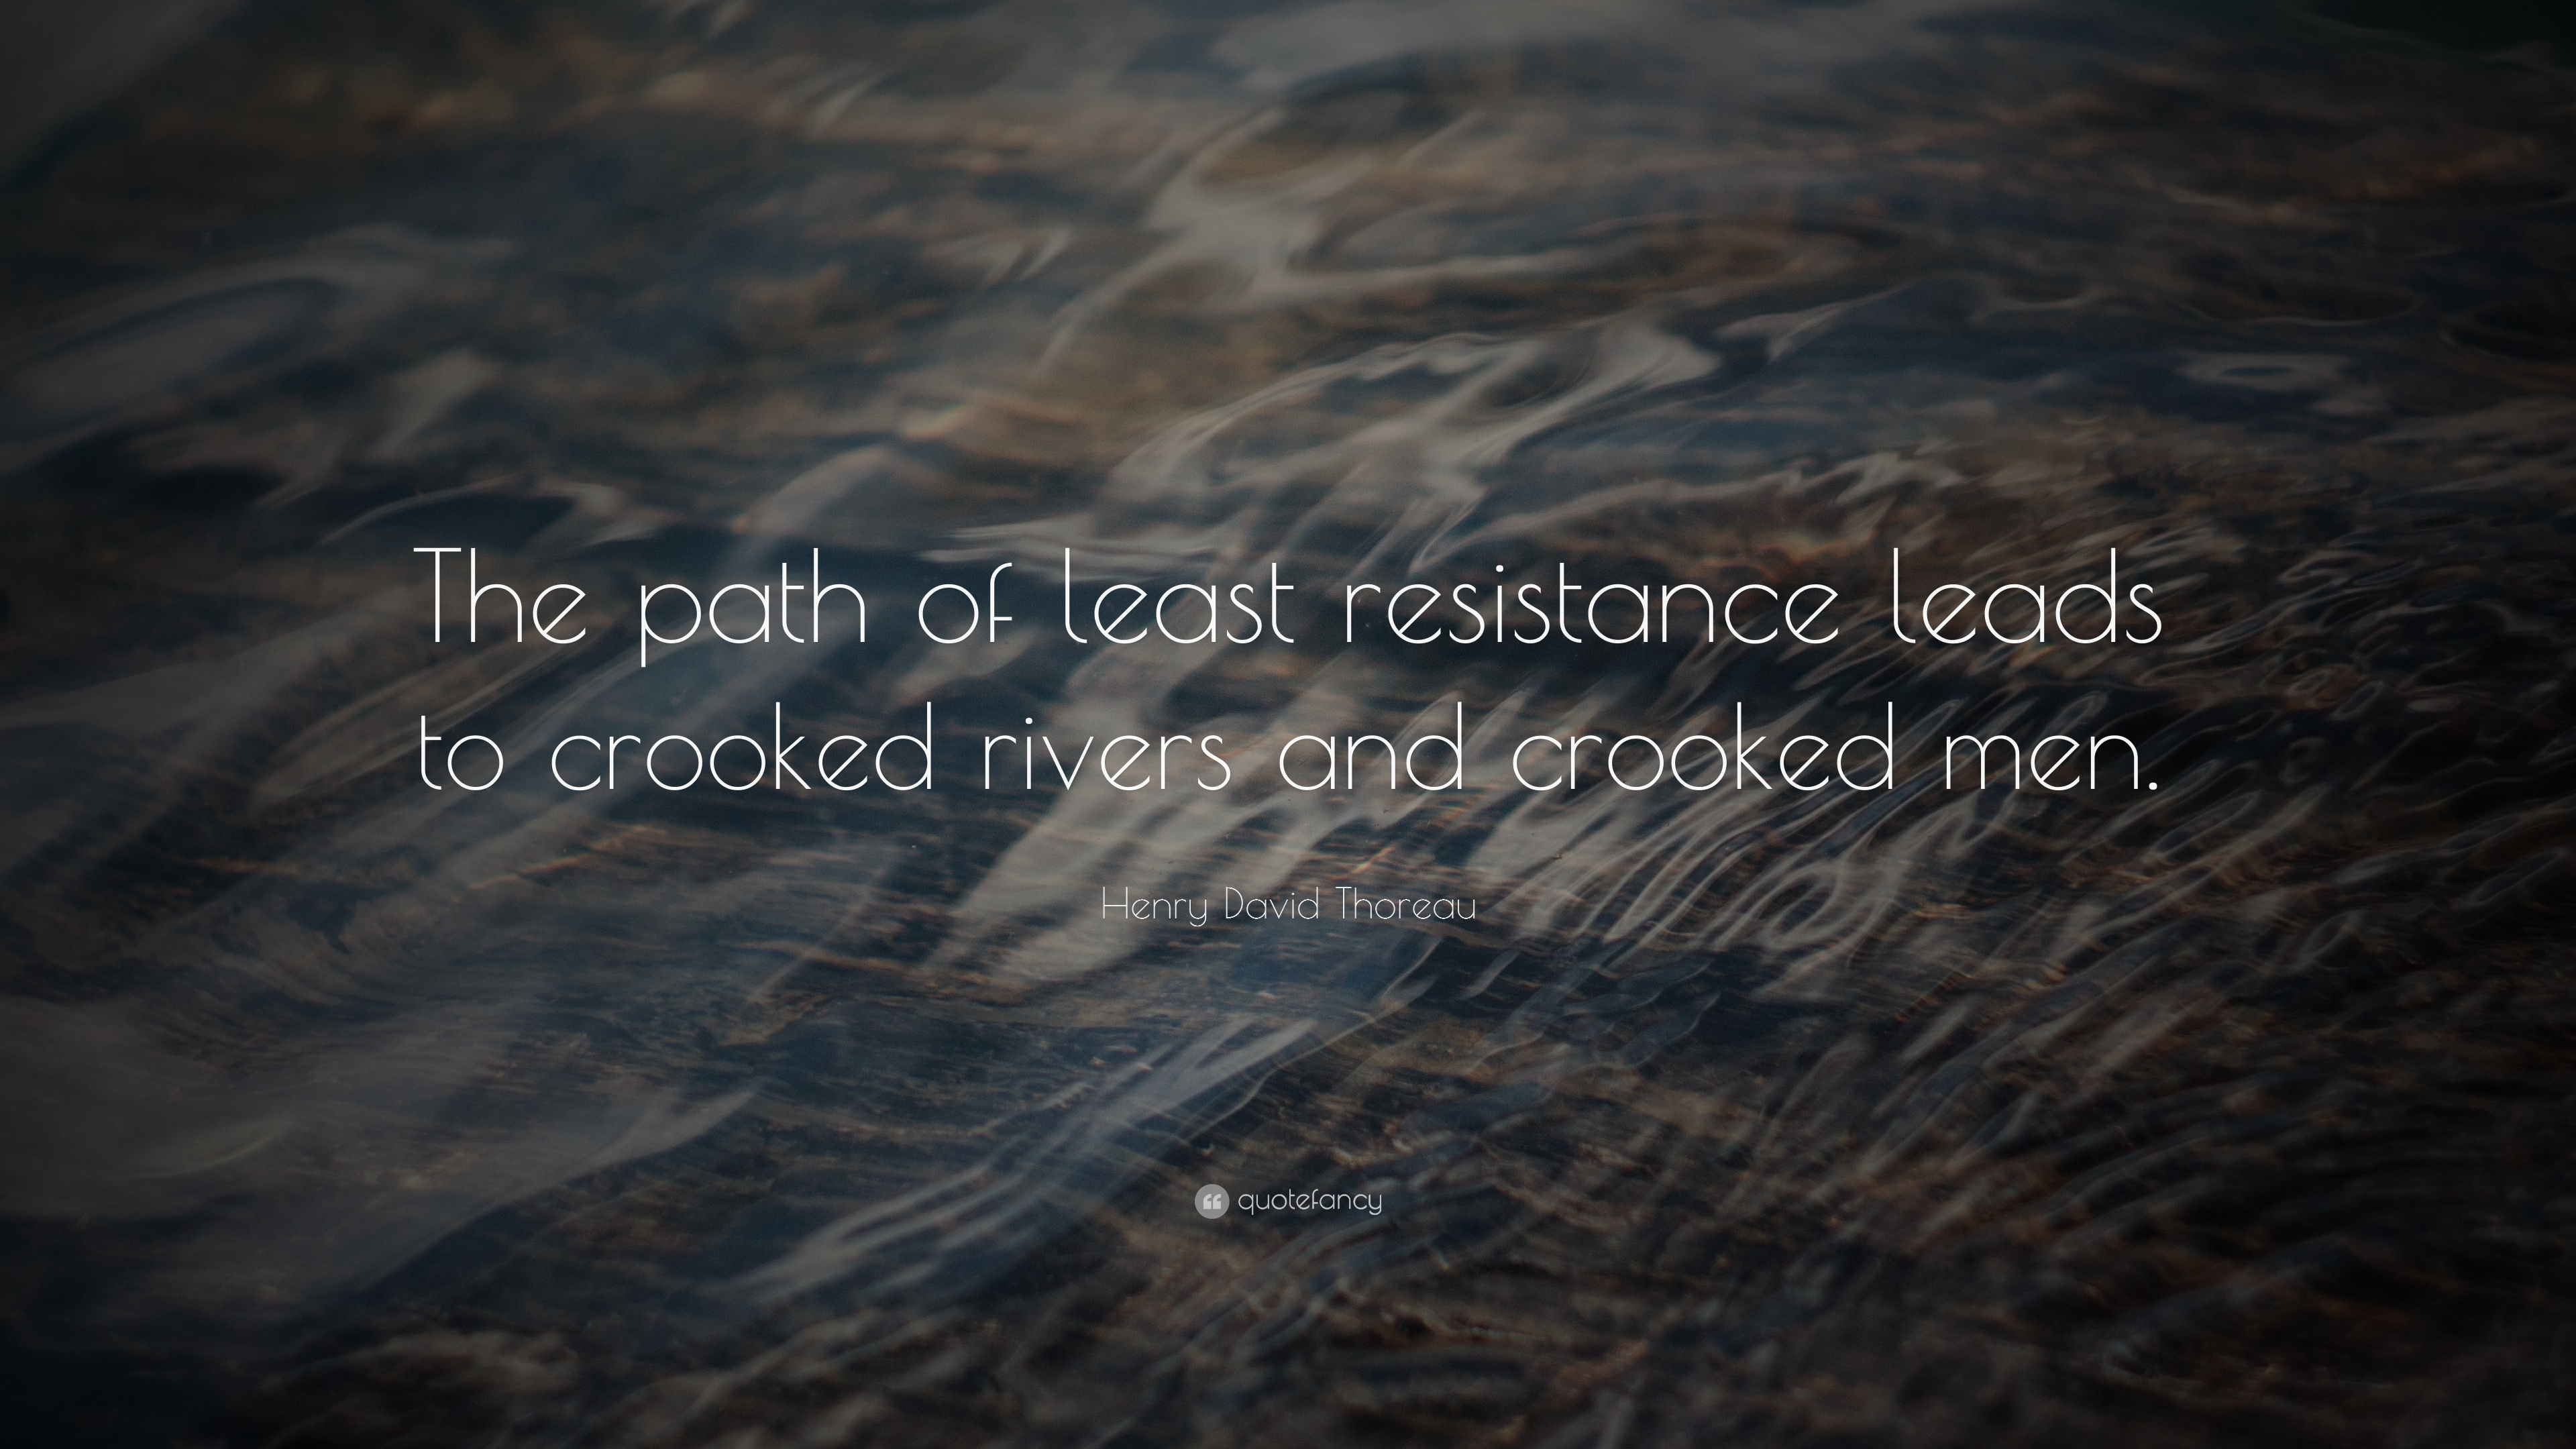 Henry David Thoreau Quote The Path Of Least Resistance Leads To Crooked Rivers And Crooked Men